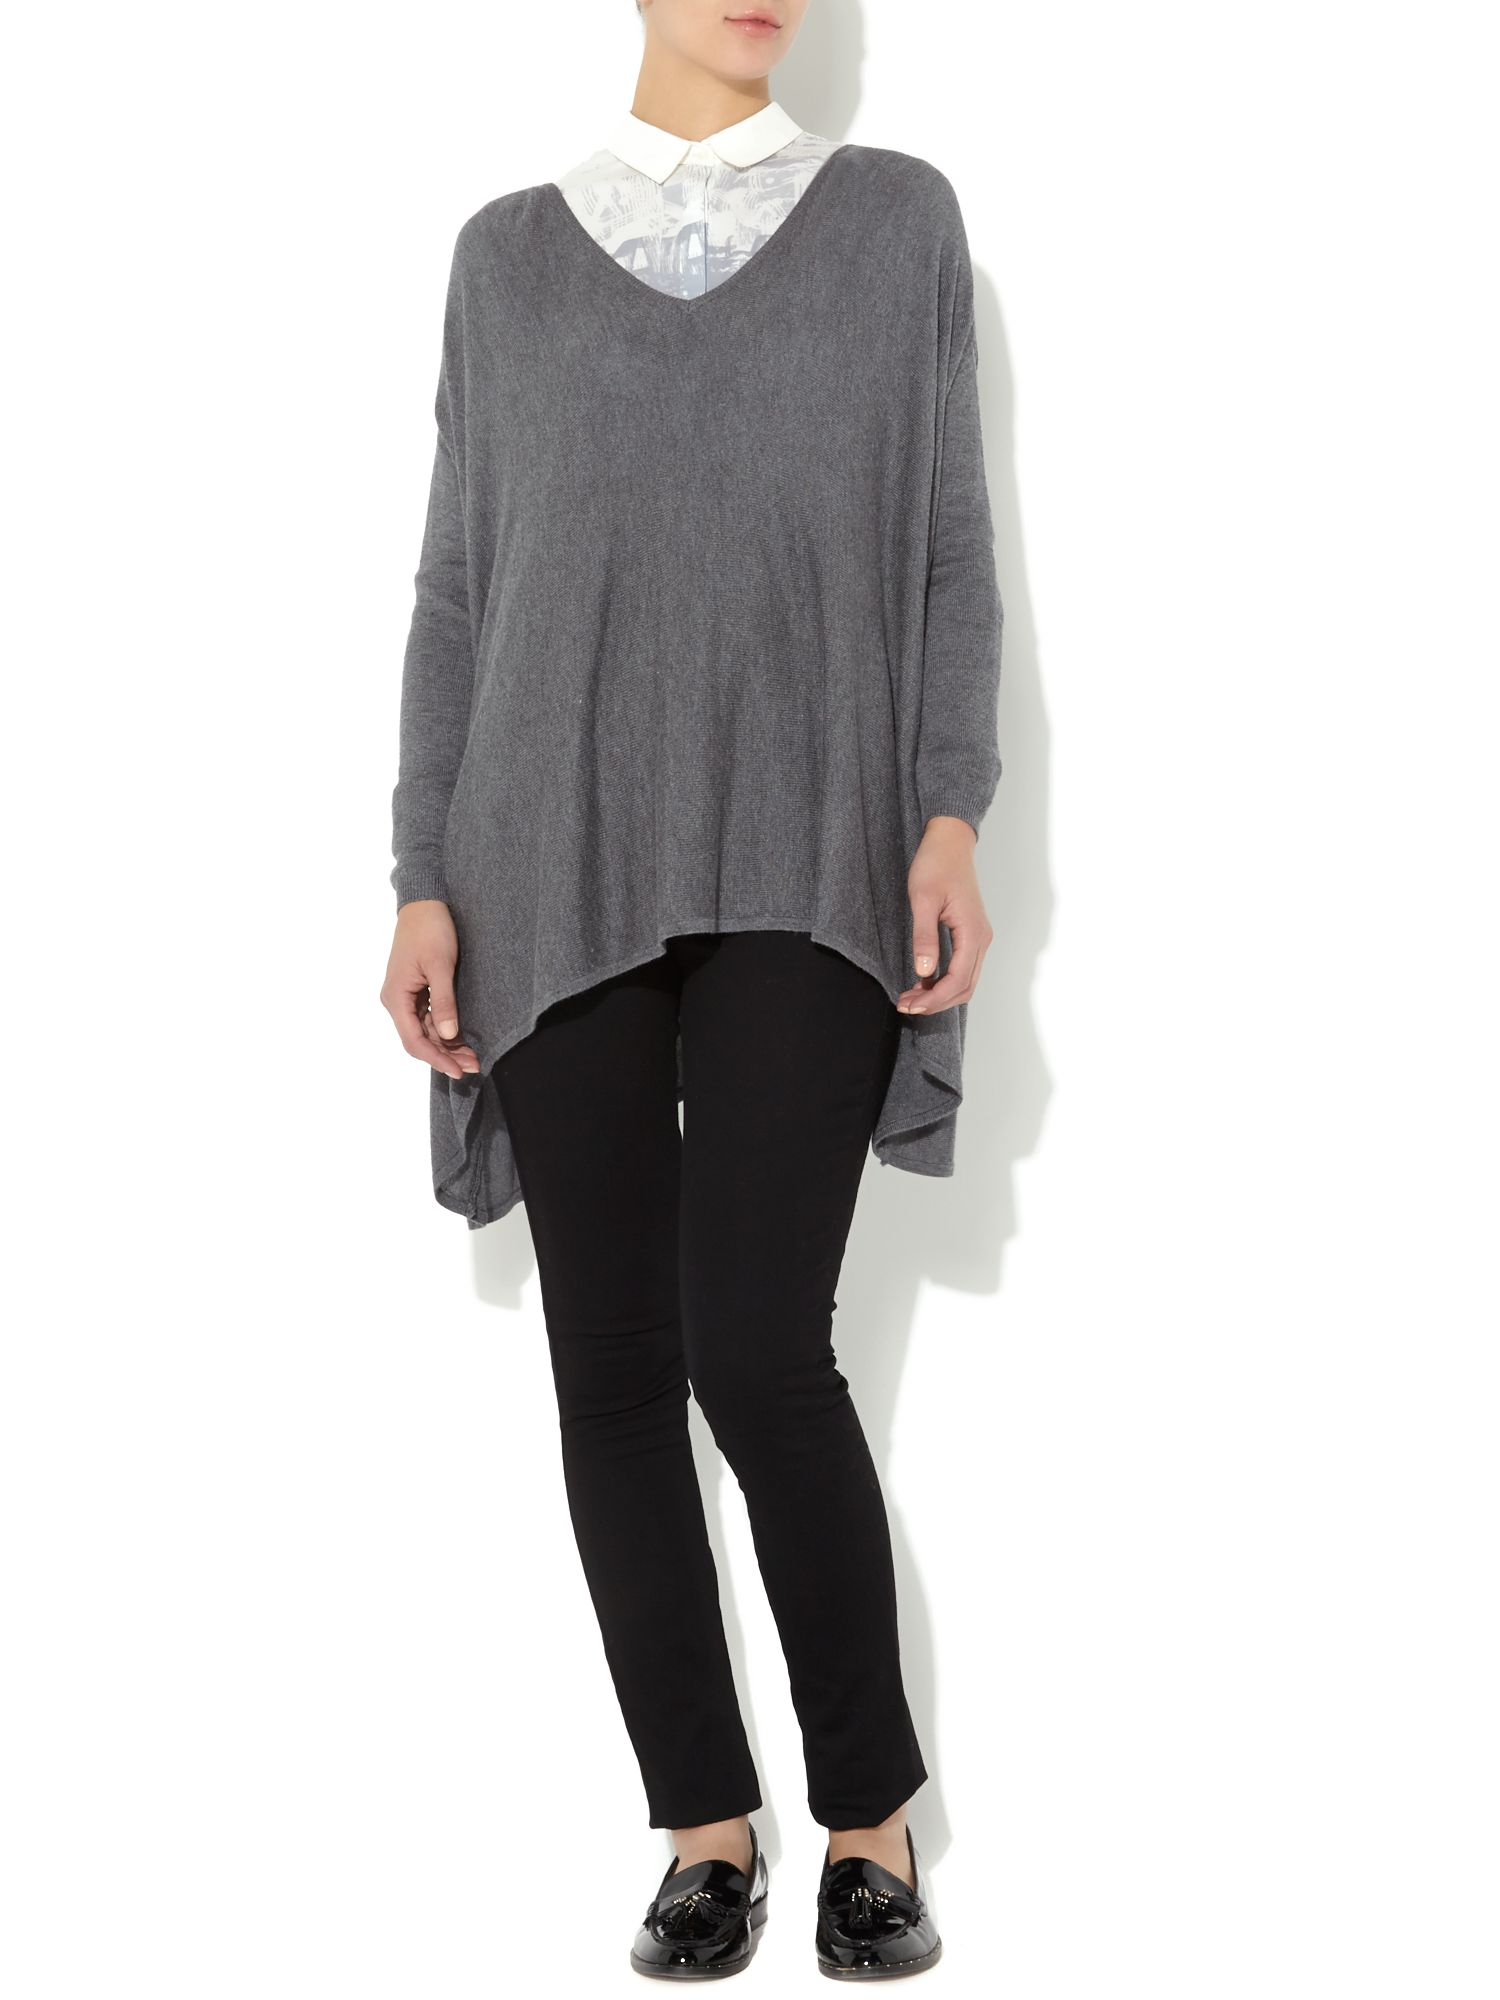 Oversized square knit